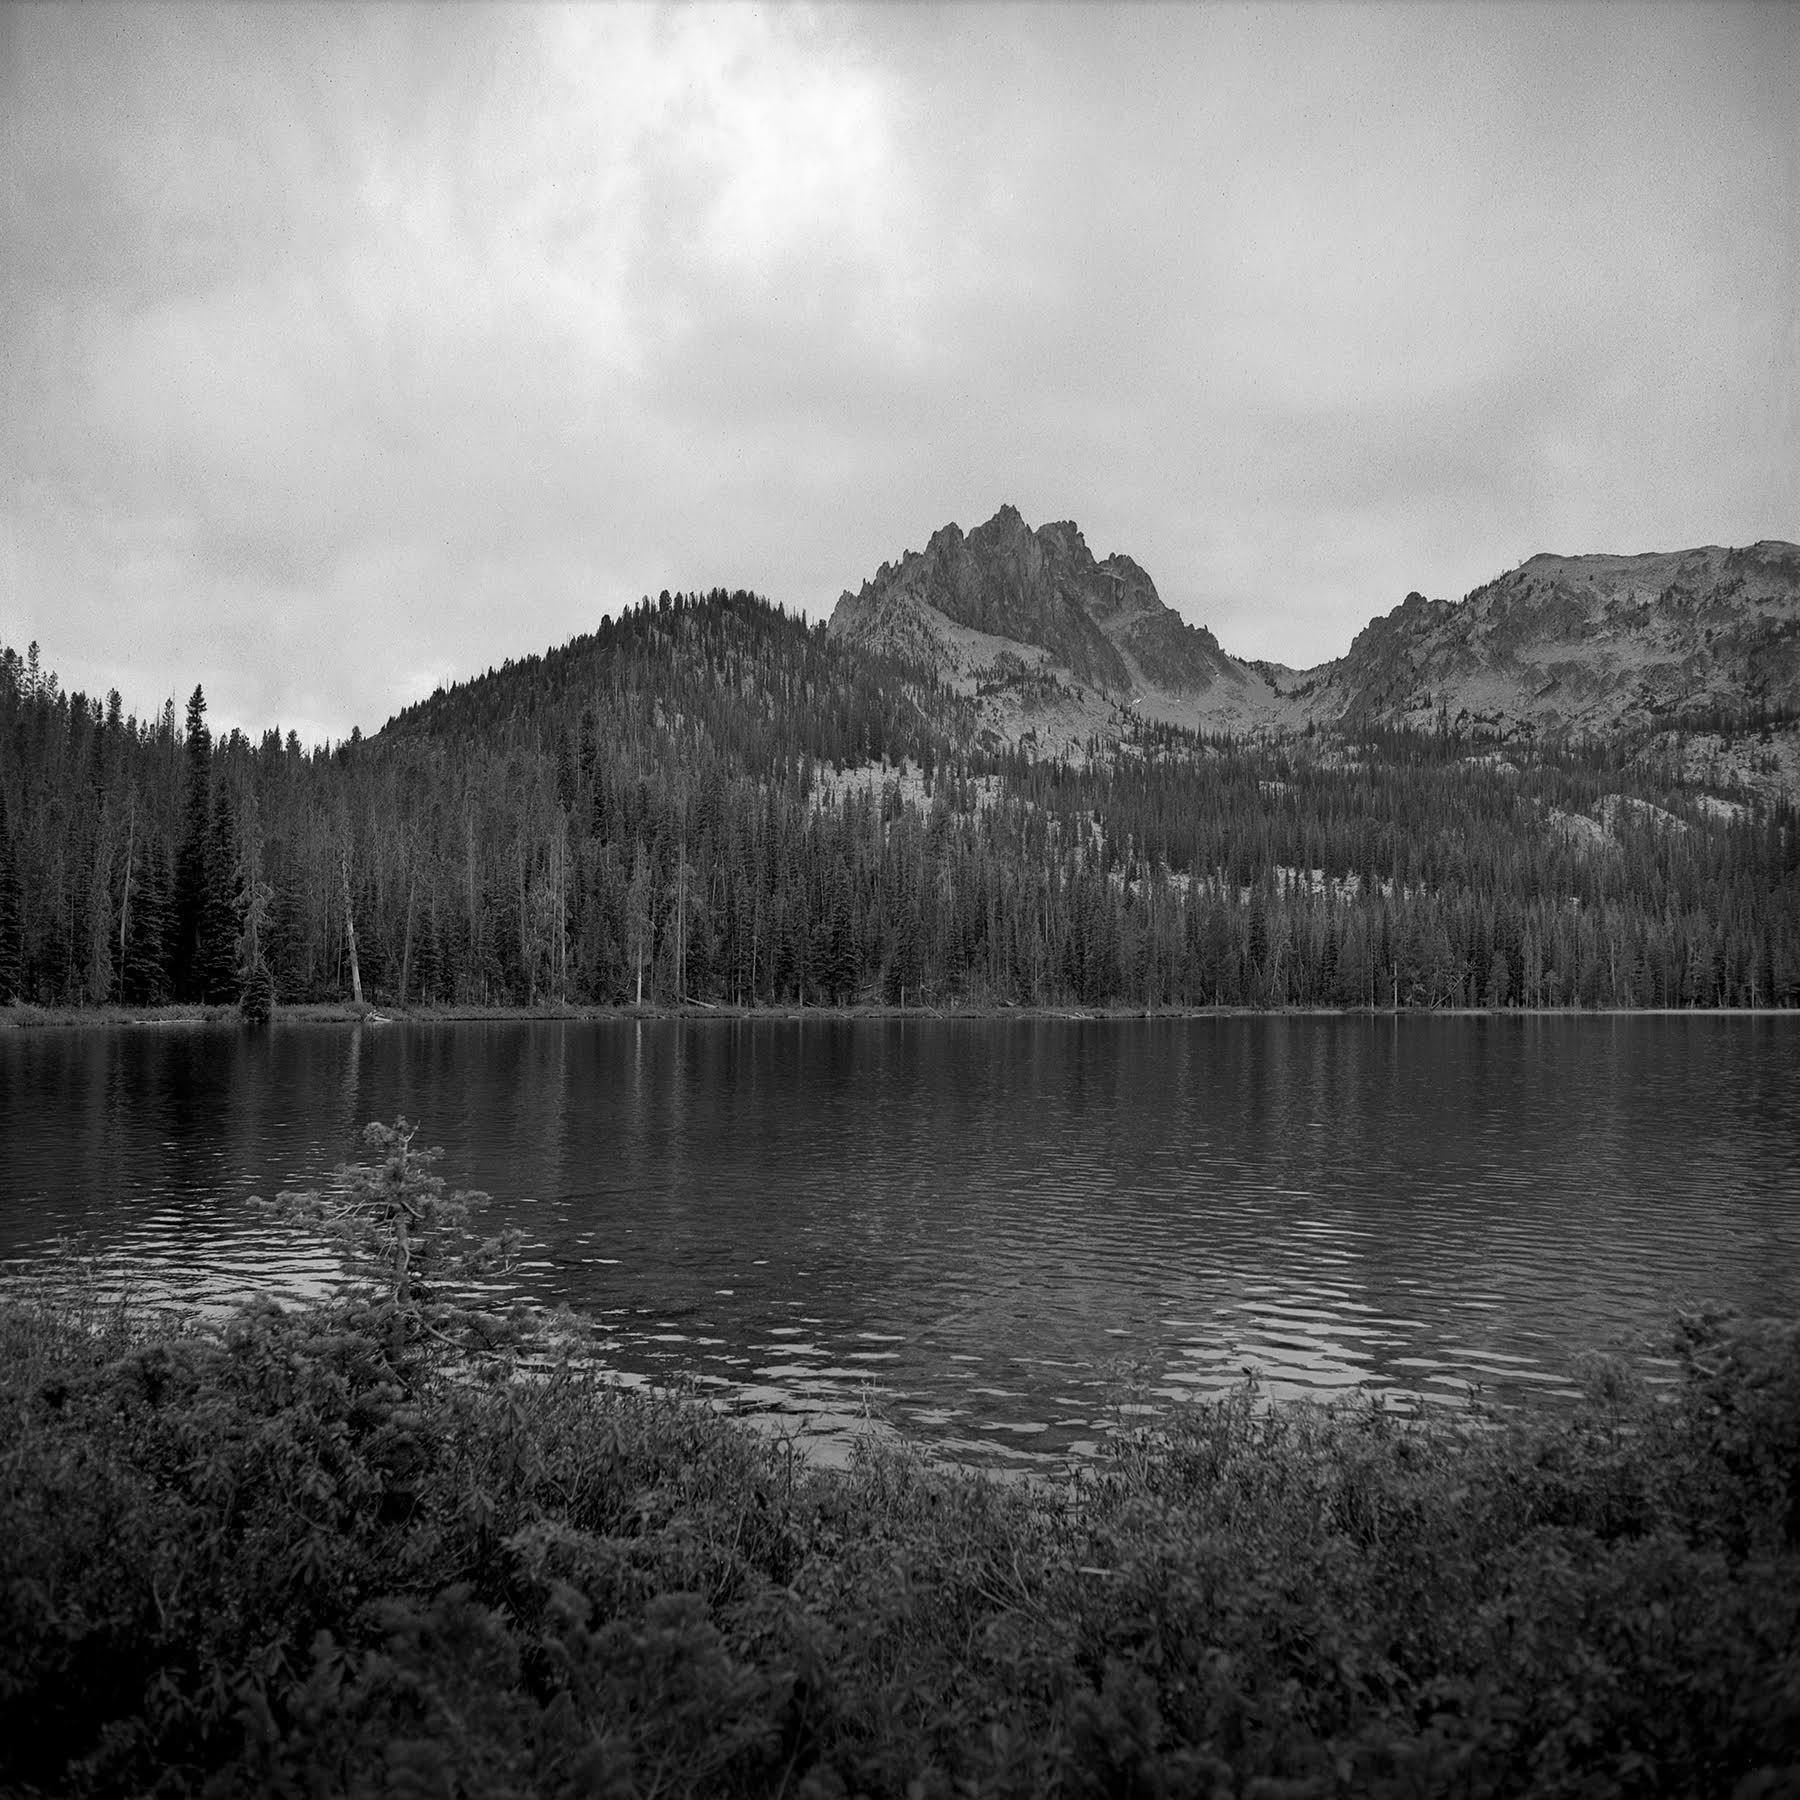 My final view of Bench Lake #1 as it began to rain Rolleiflex FW, Ilford FP-4 plus